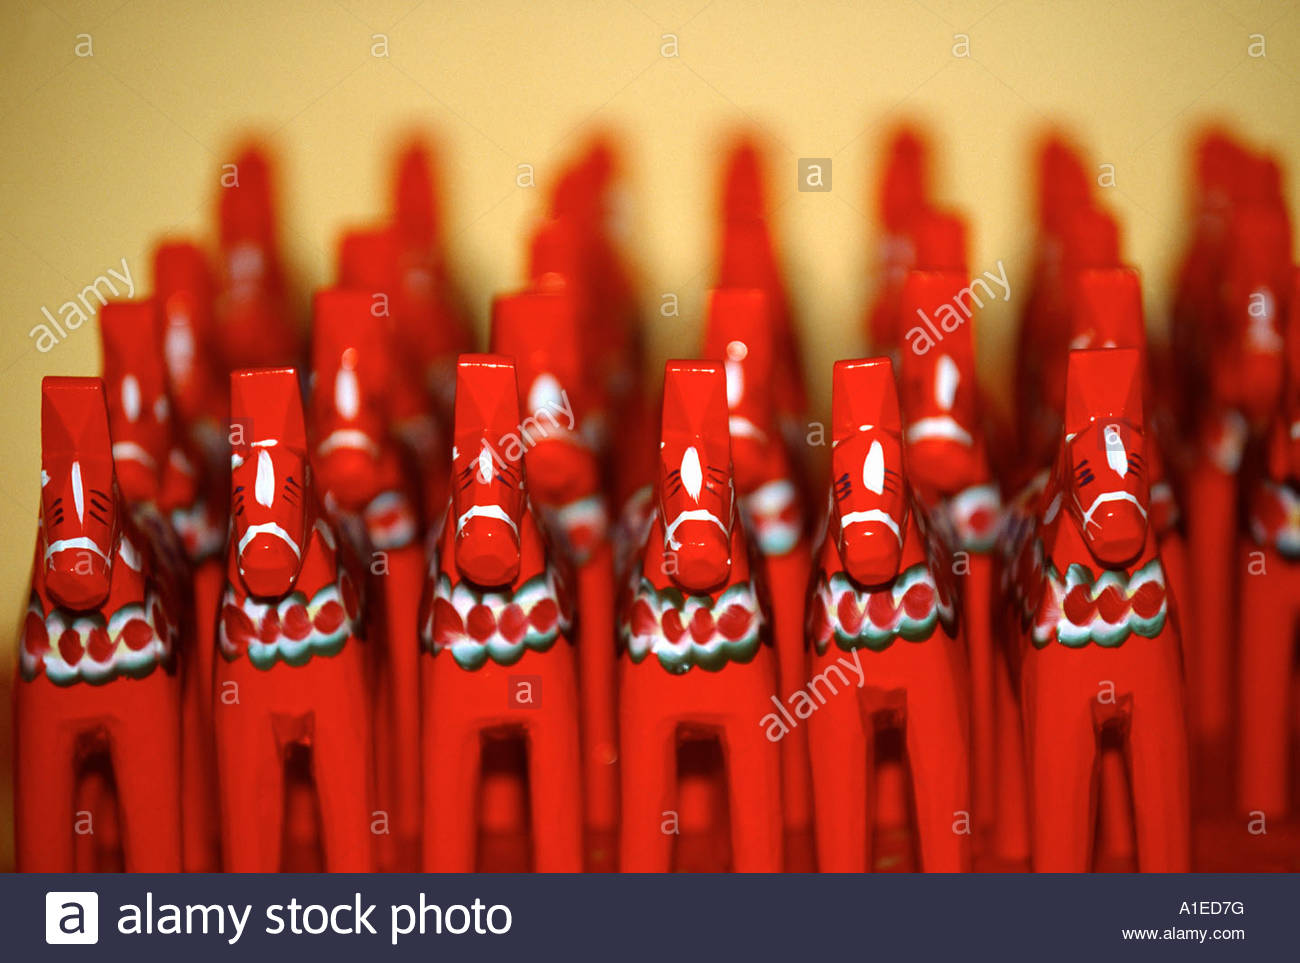 Group of red painted wooden horses - Stock Image